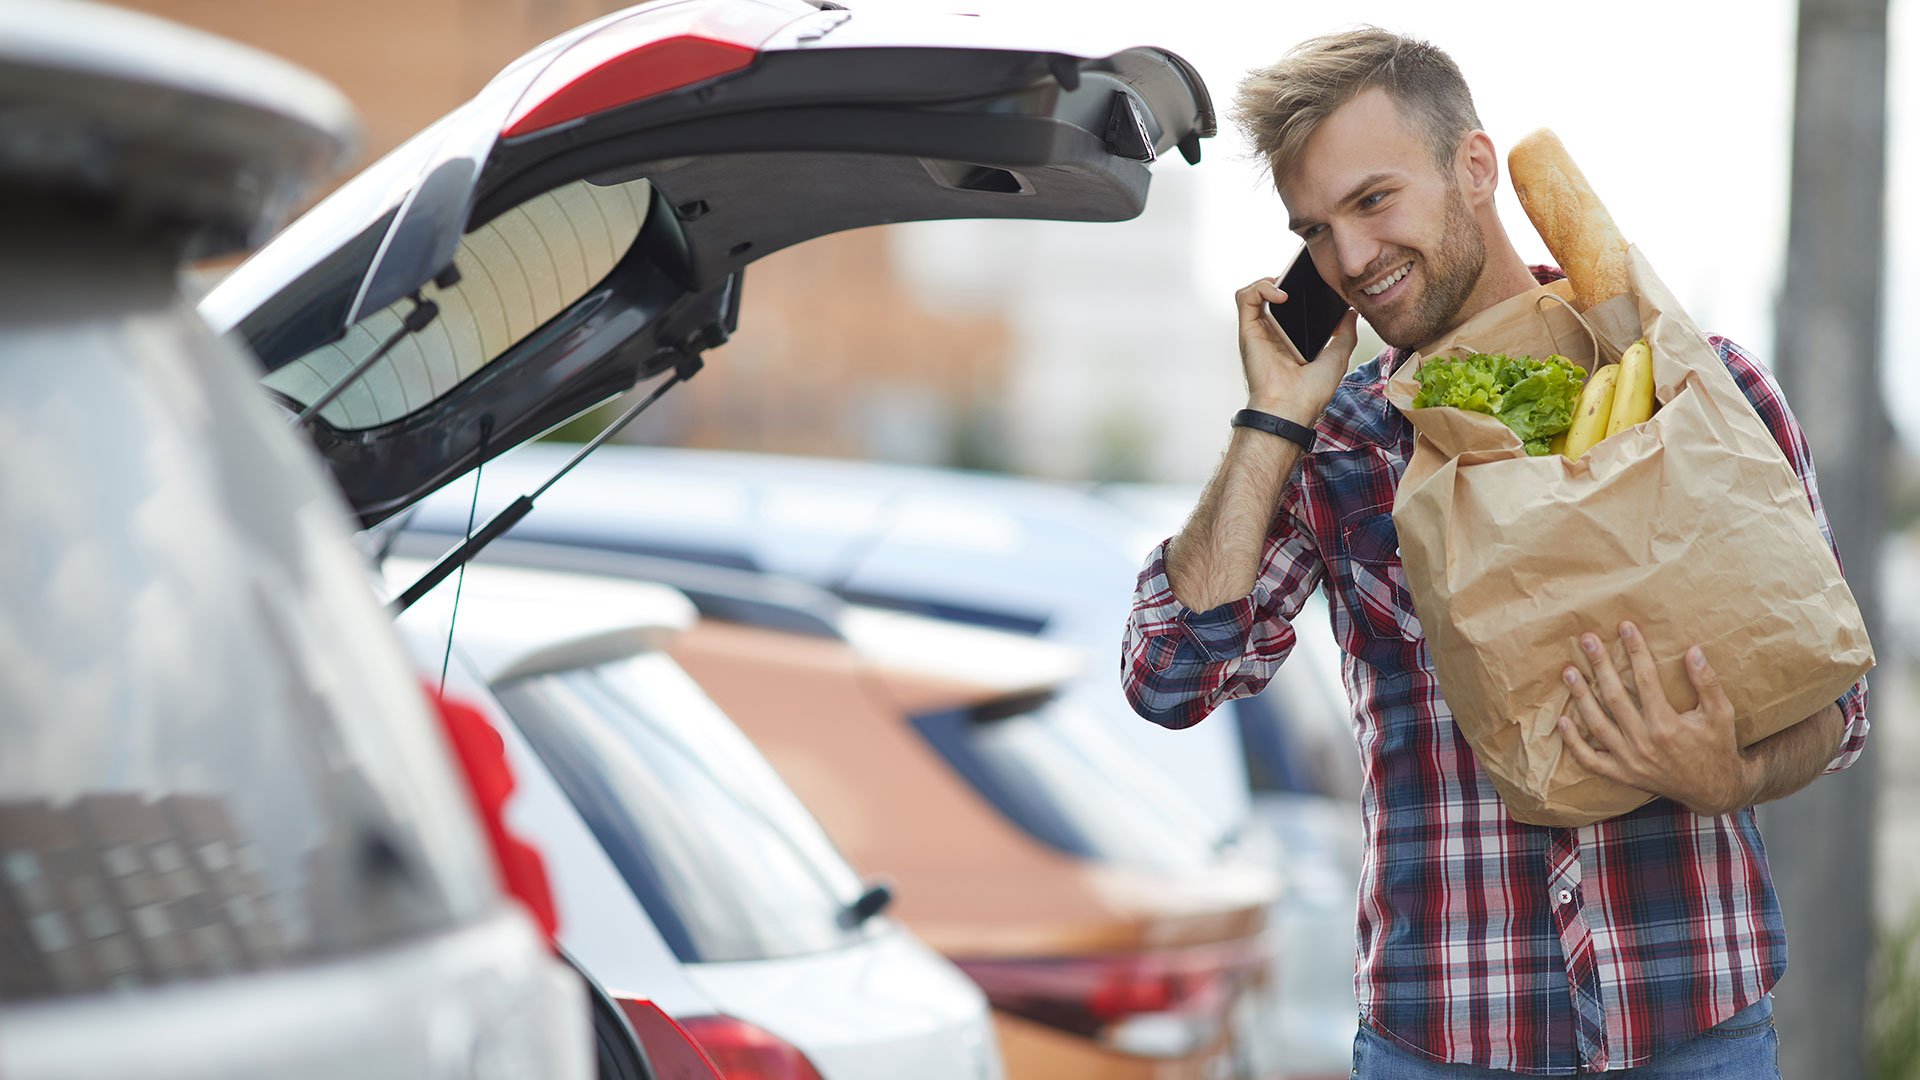 A man gets groceries out of his hatchback with talking on a mobile phone.